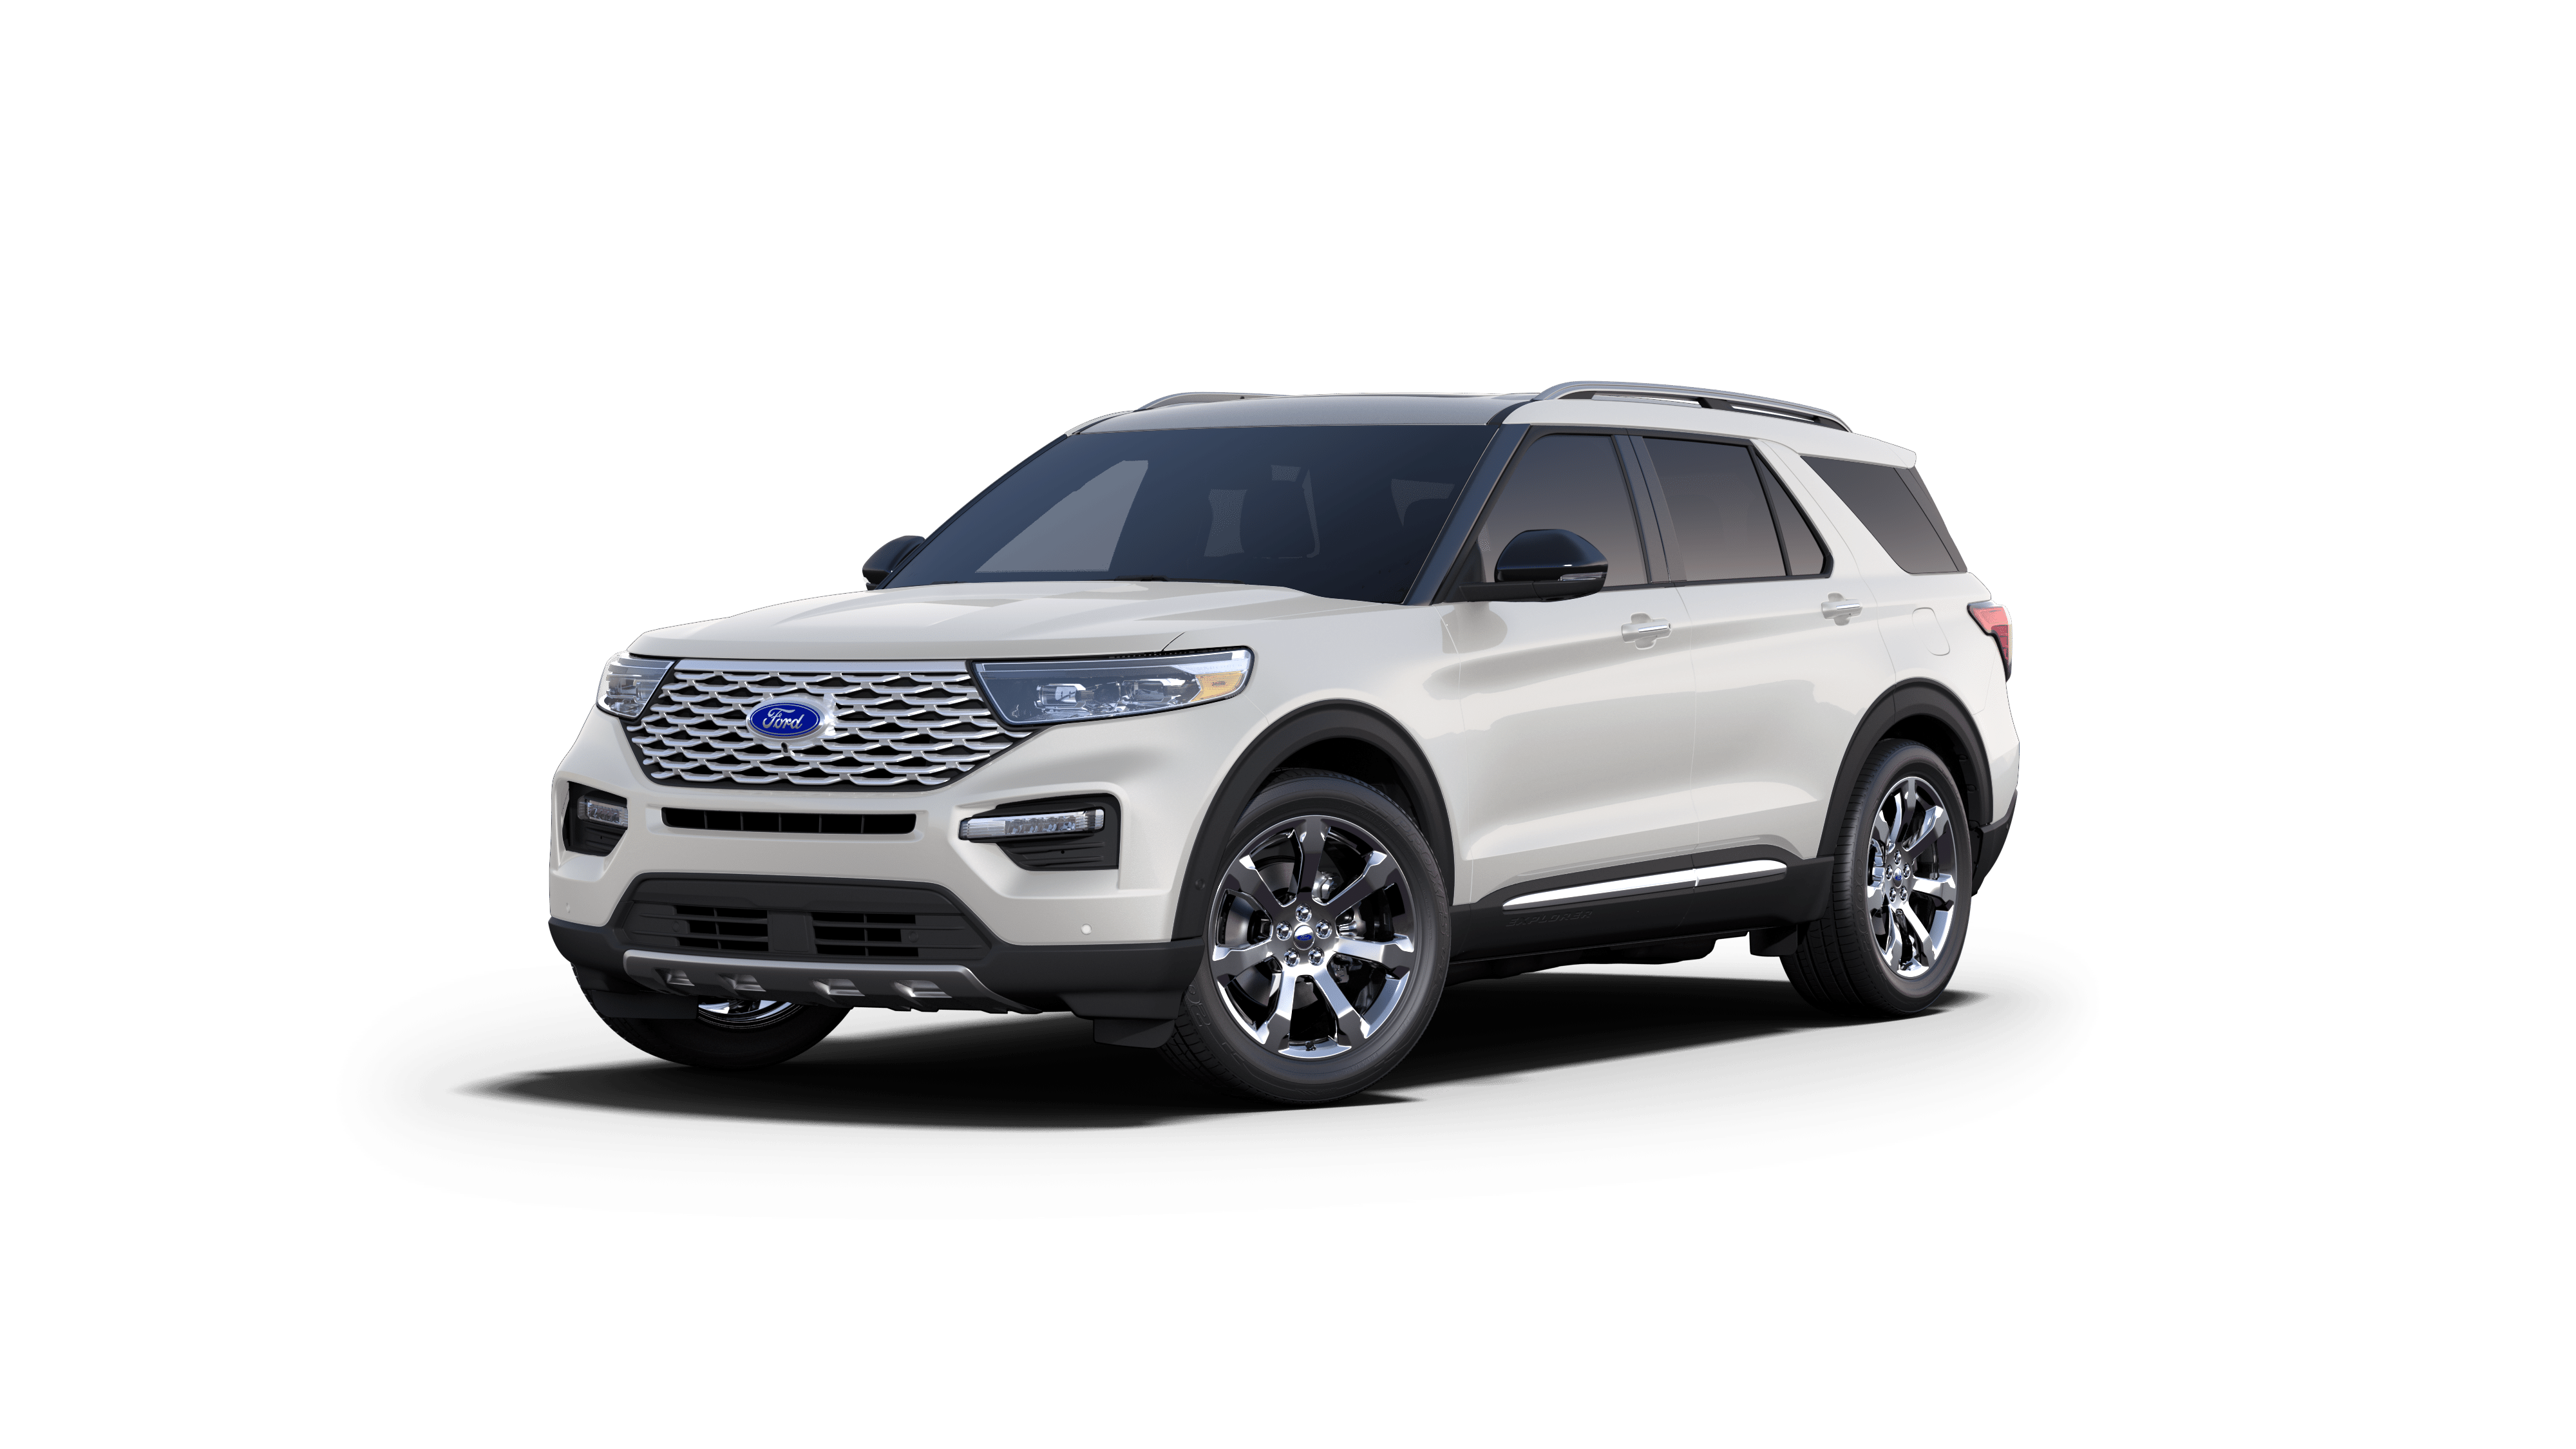 58 Gallery of When Will 2020 Ford Explorer Be Available Performance with When Will 2020 Ford Explorer Be Available